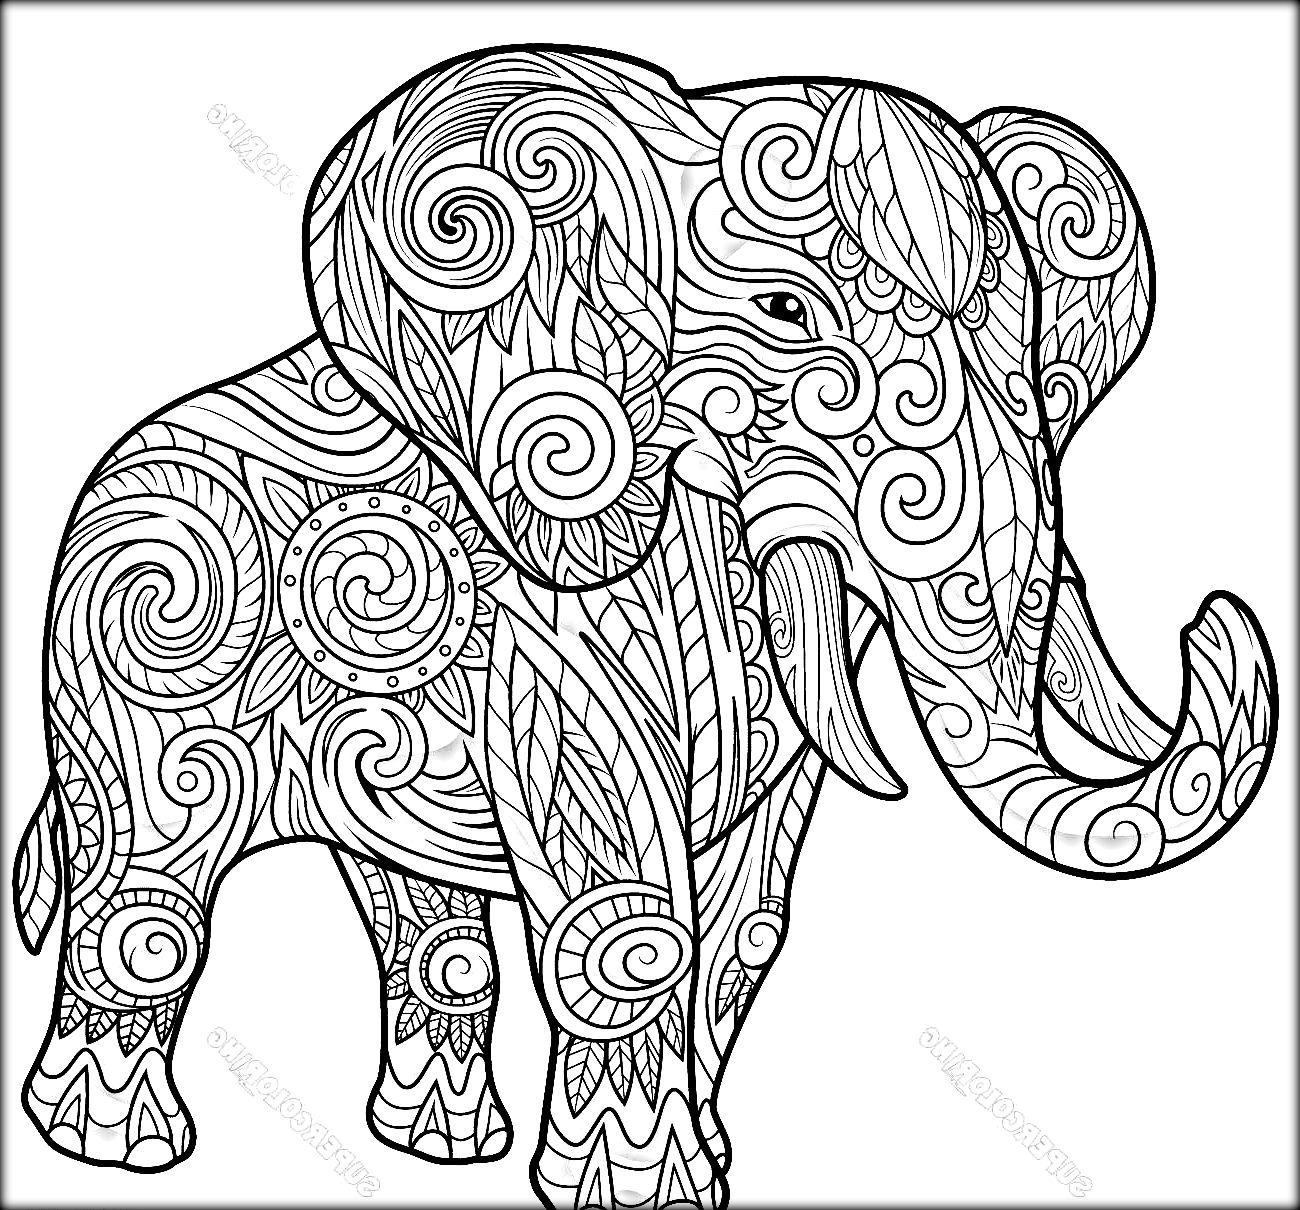 elephant coloring pages for adults - printable elephant coloring pages for adults